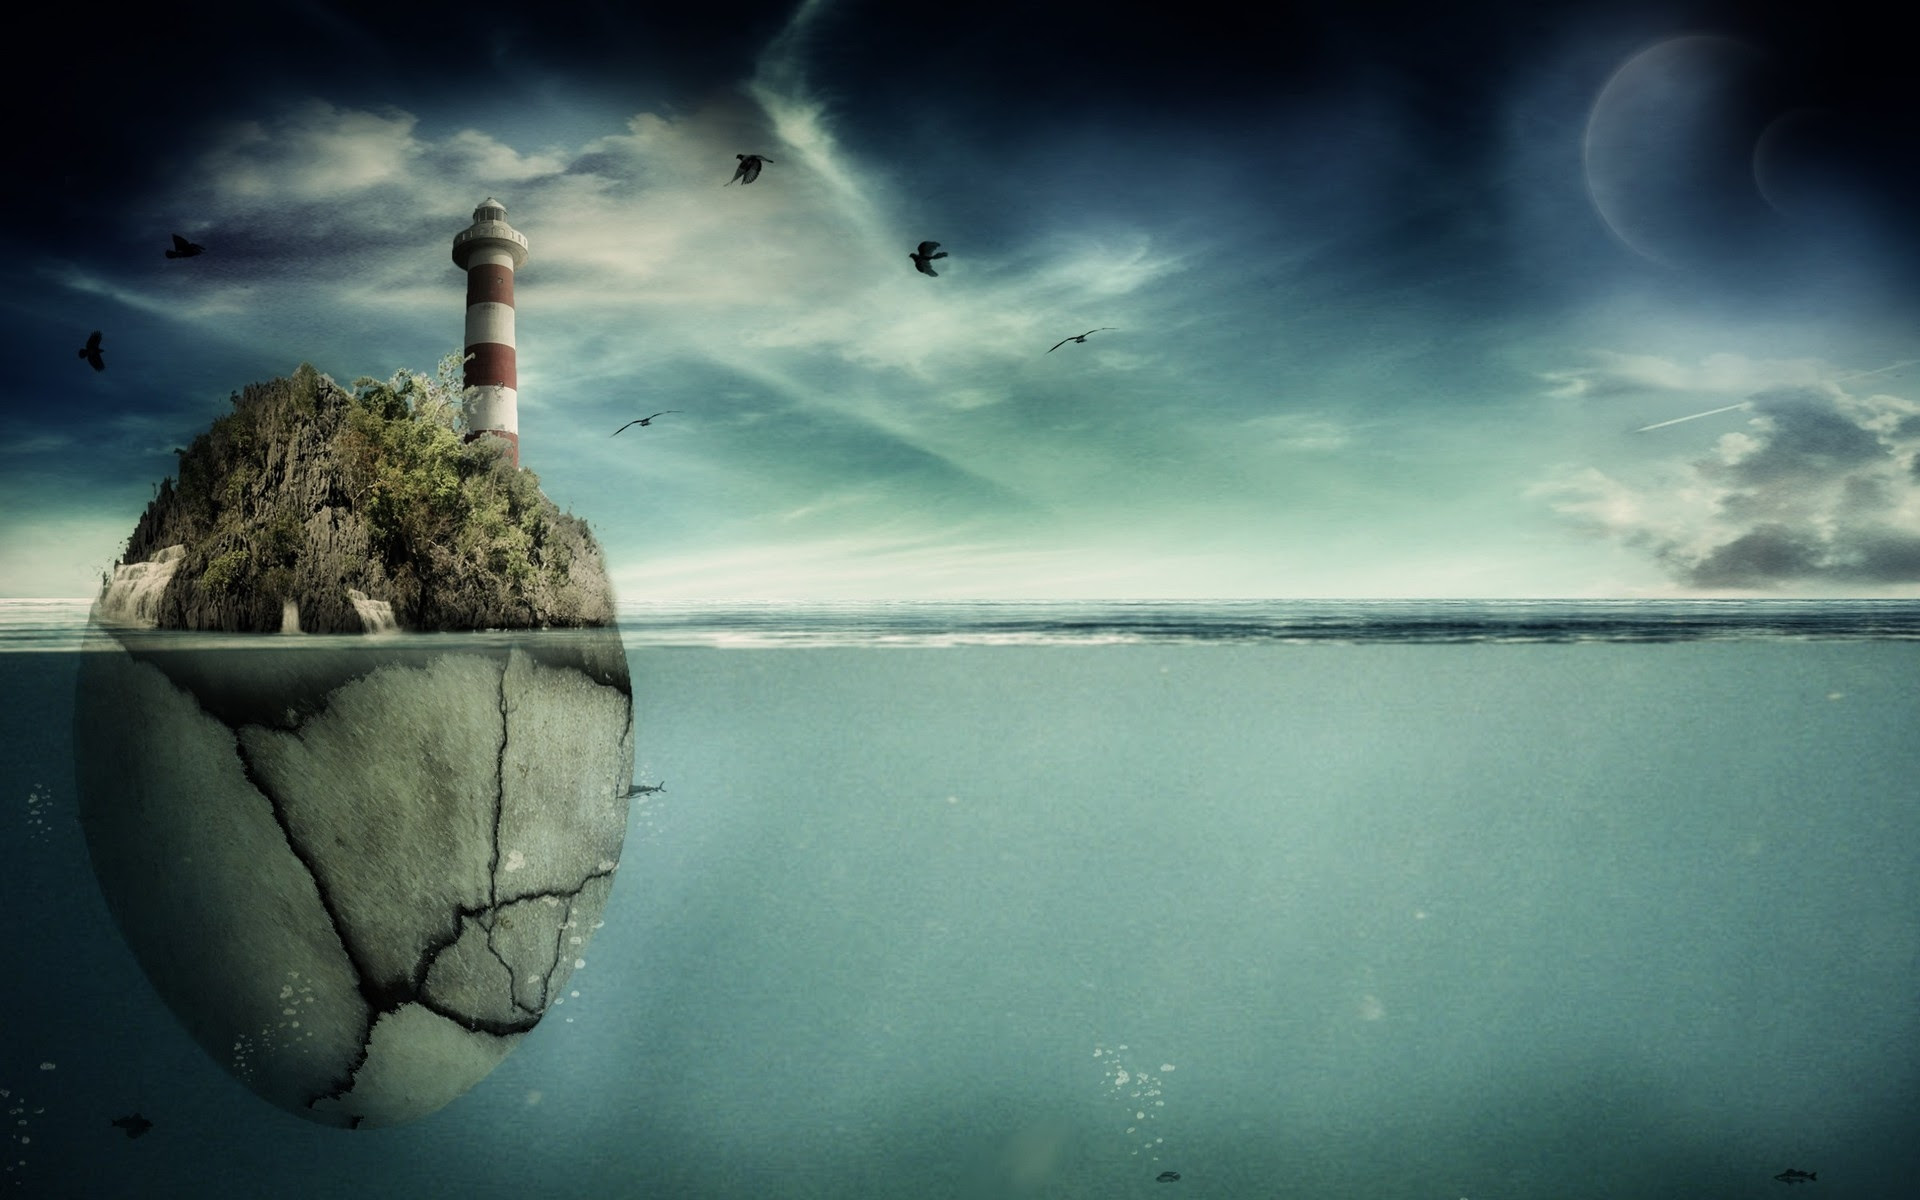 parallel Worlds wallpapers and images - download wallpapers